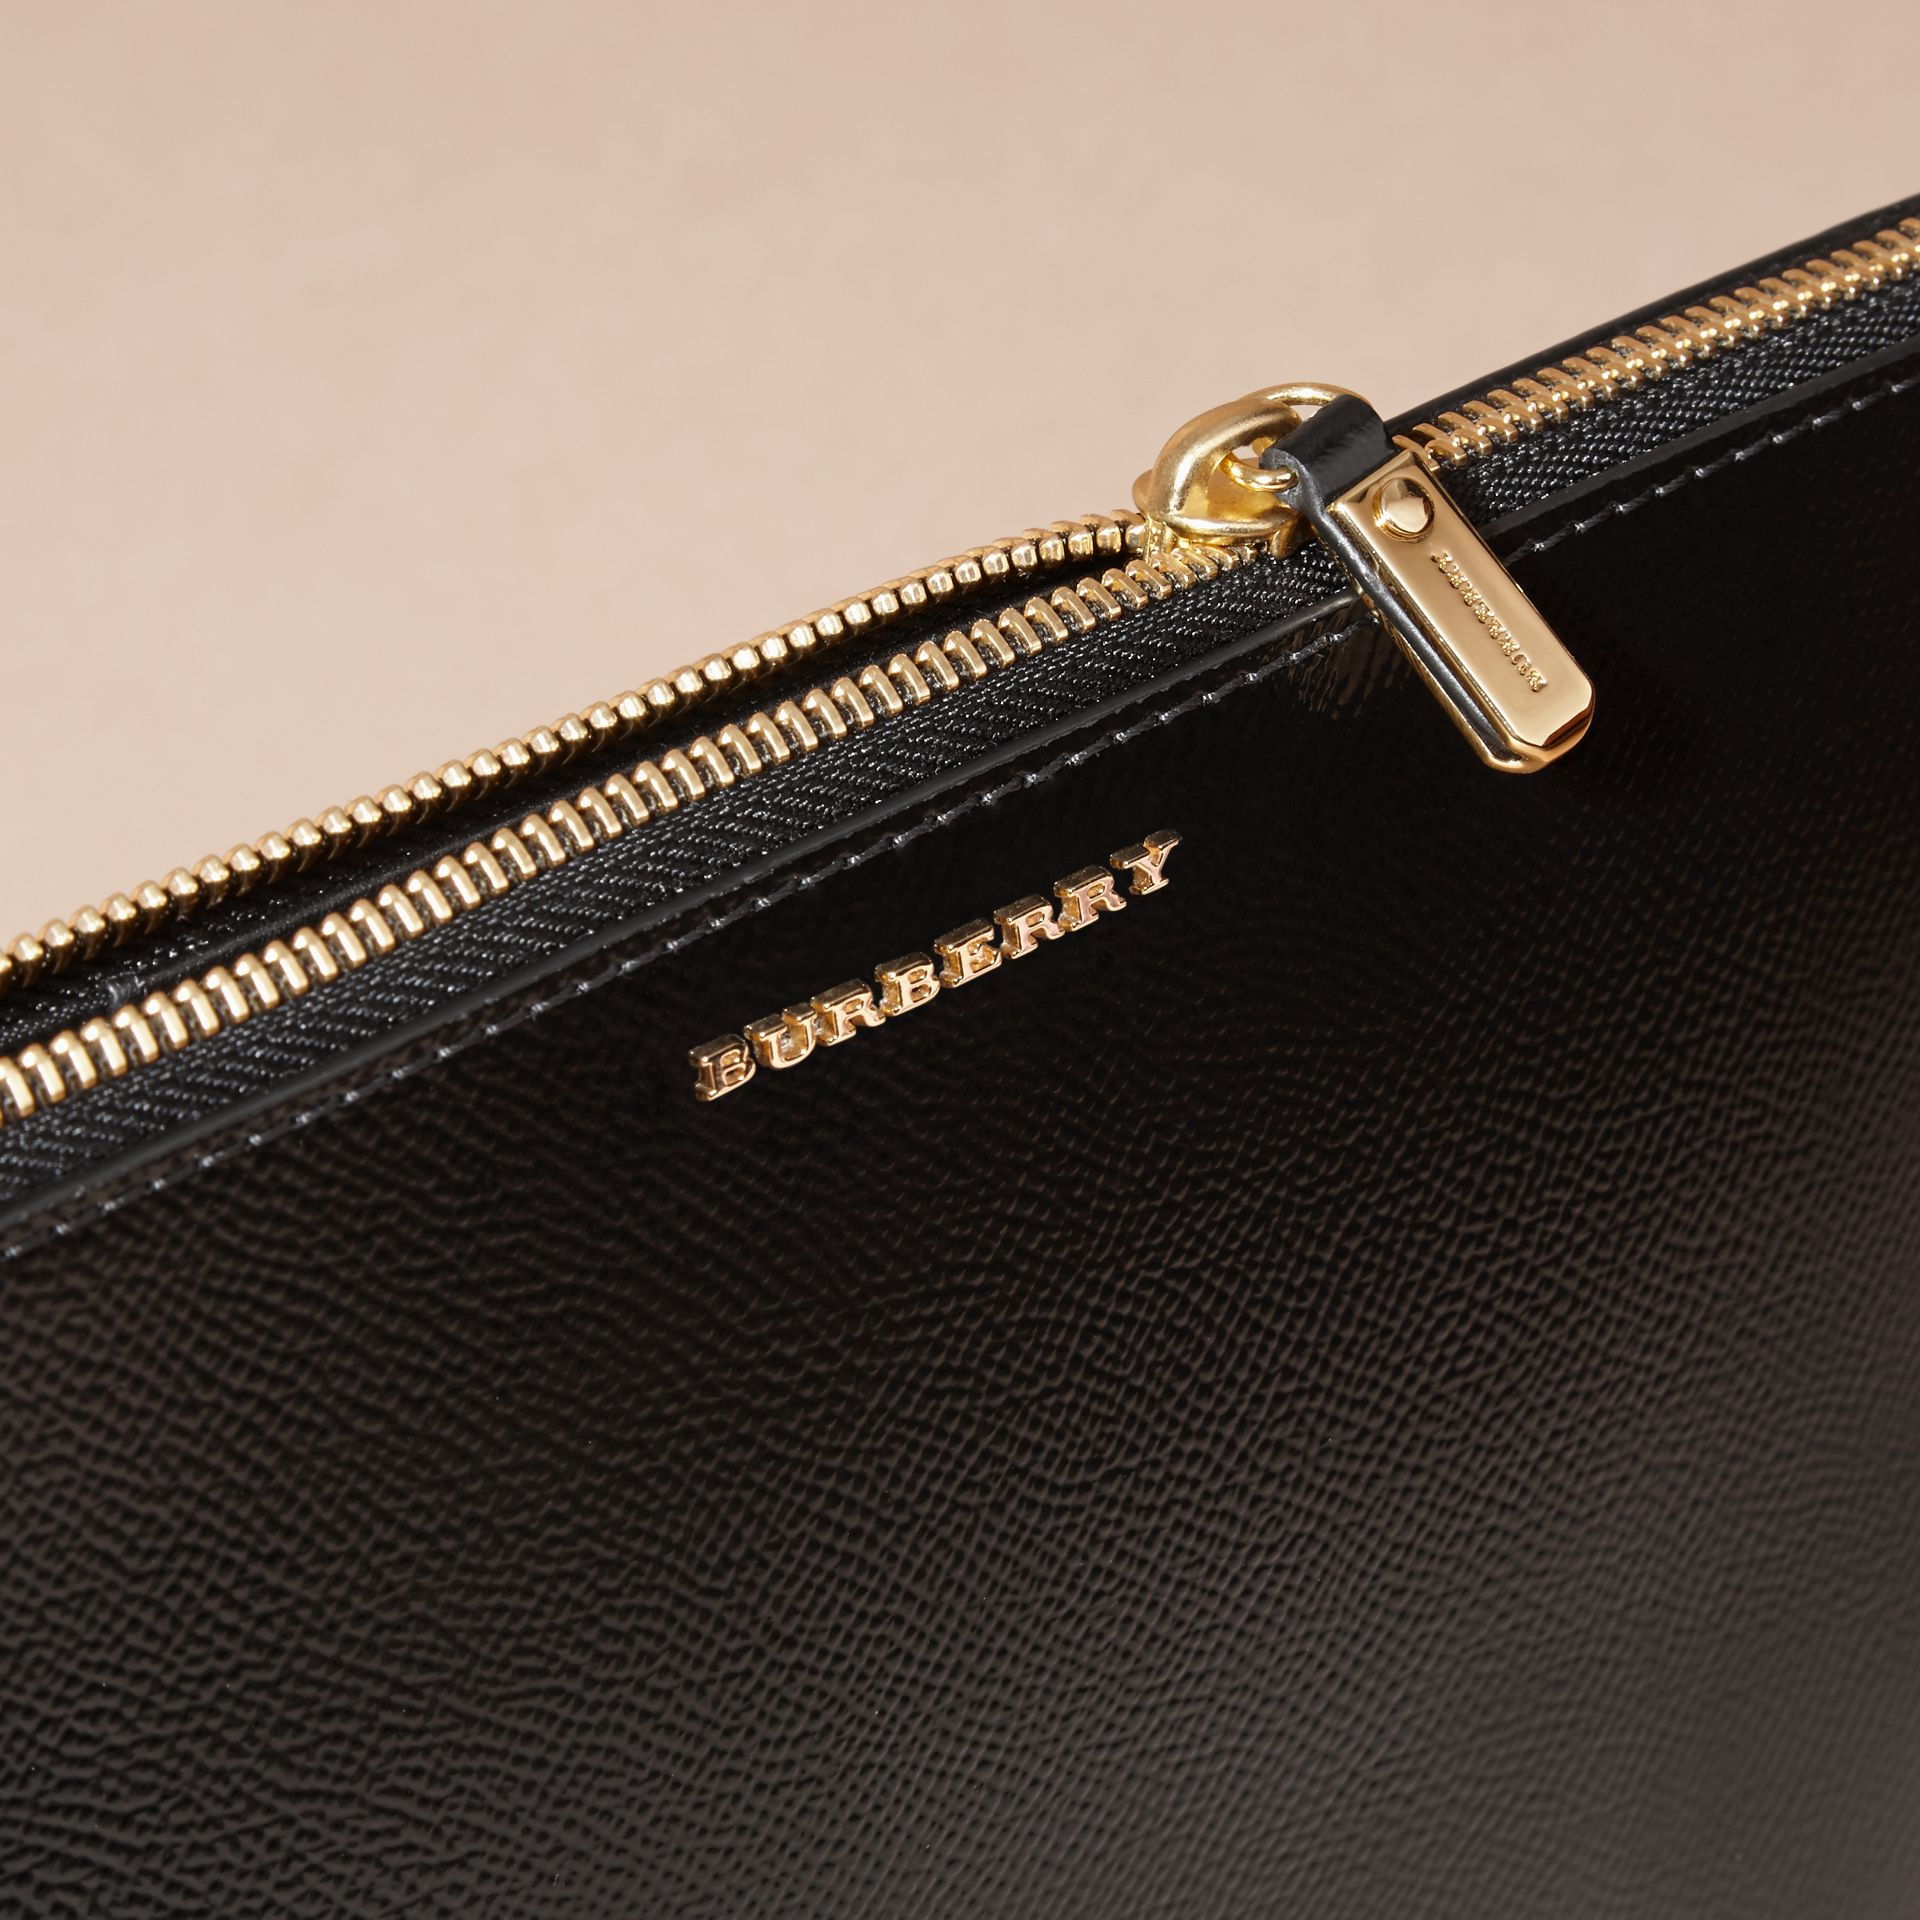 Patent London Leather Clutch Bag in Black - gallery image 2